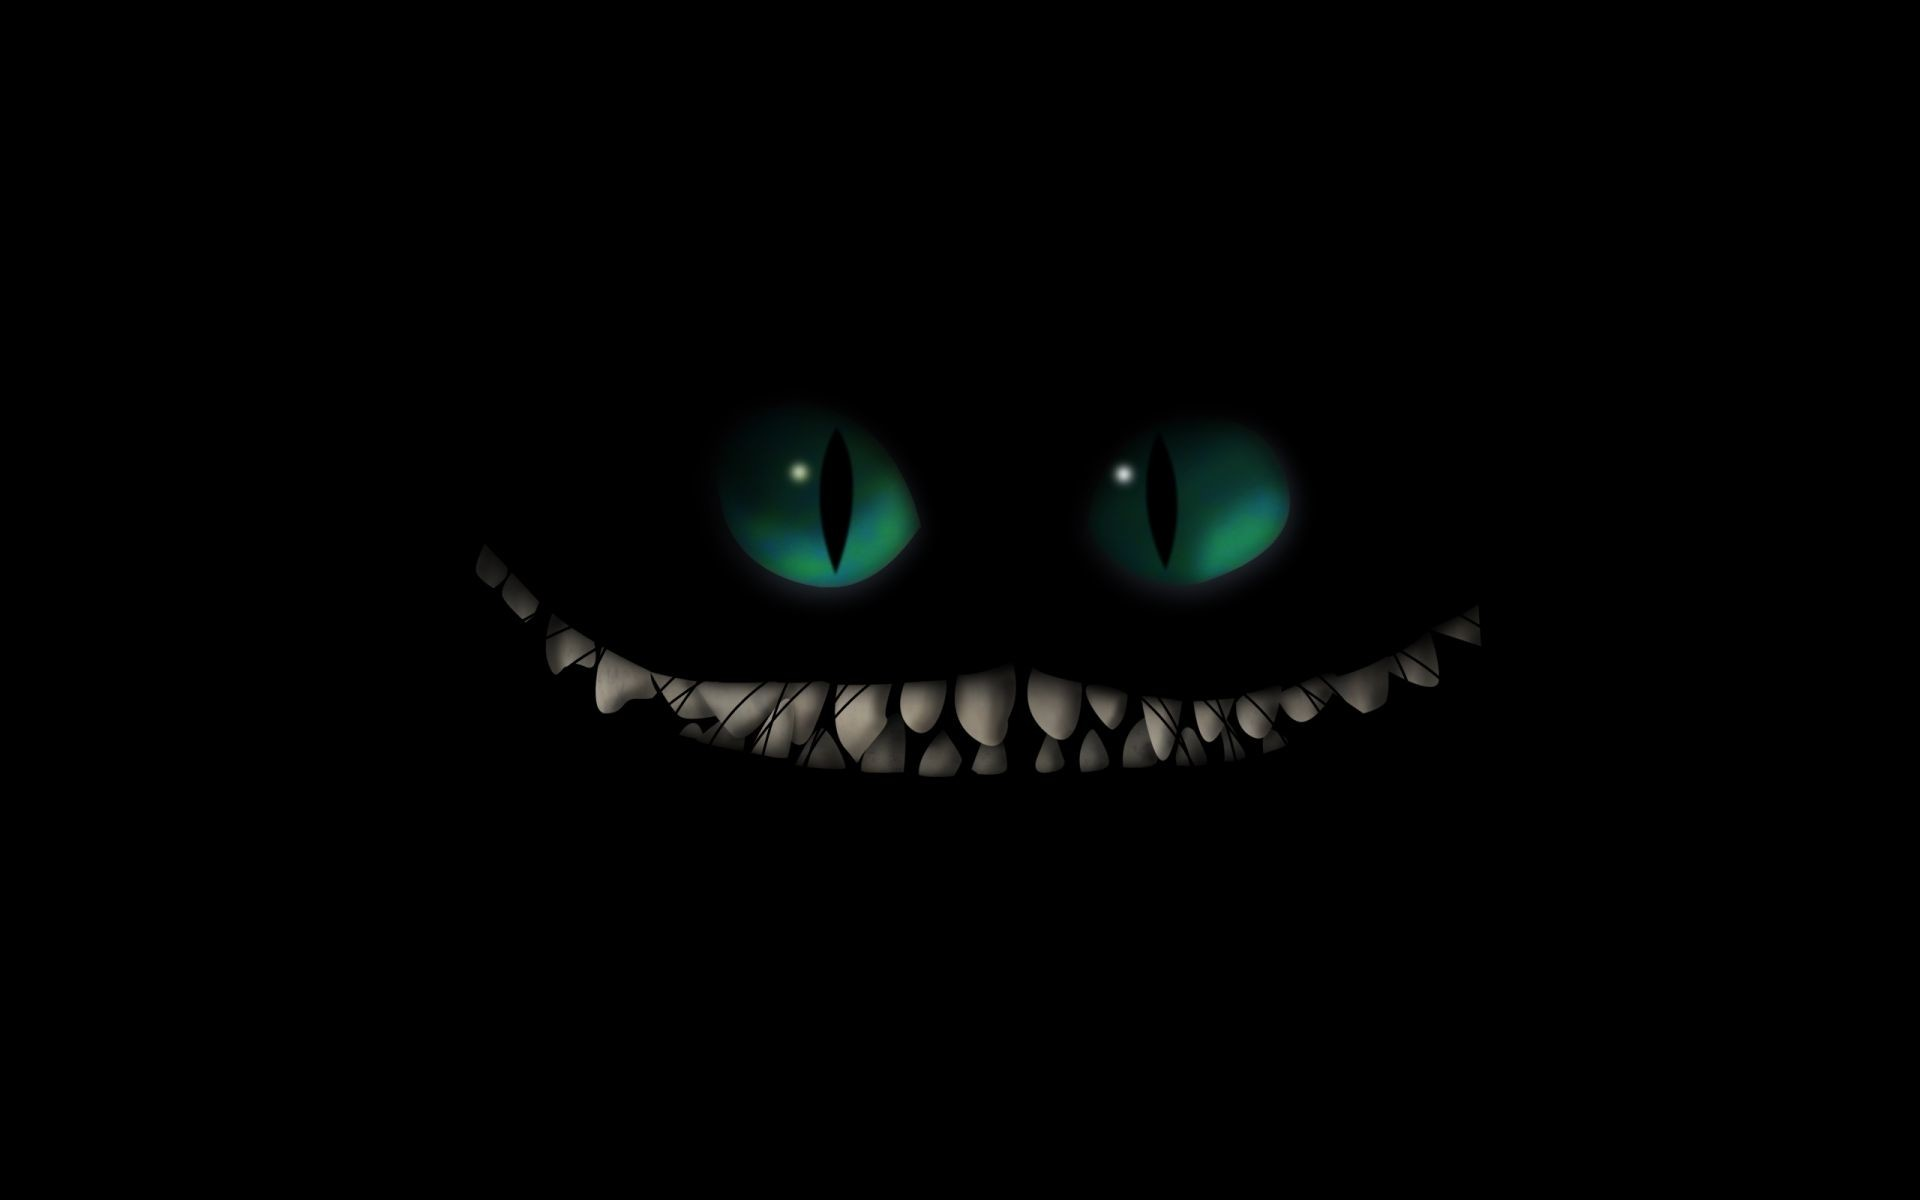 1920x1200 Dark monster creature fangs evil scary creepy spooky halloween .